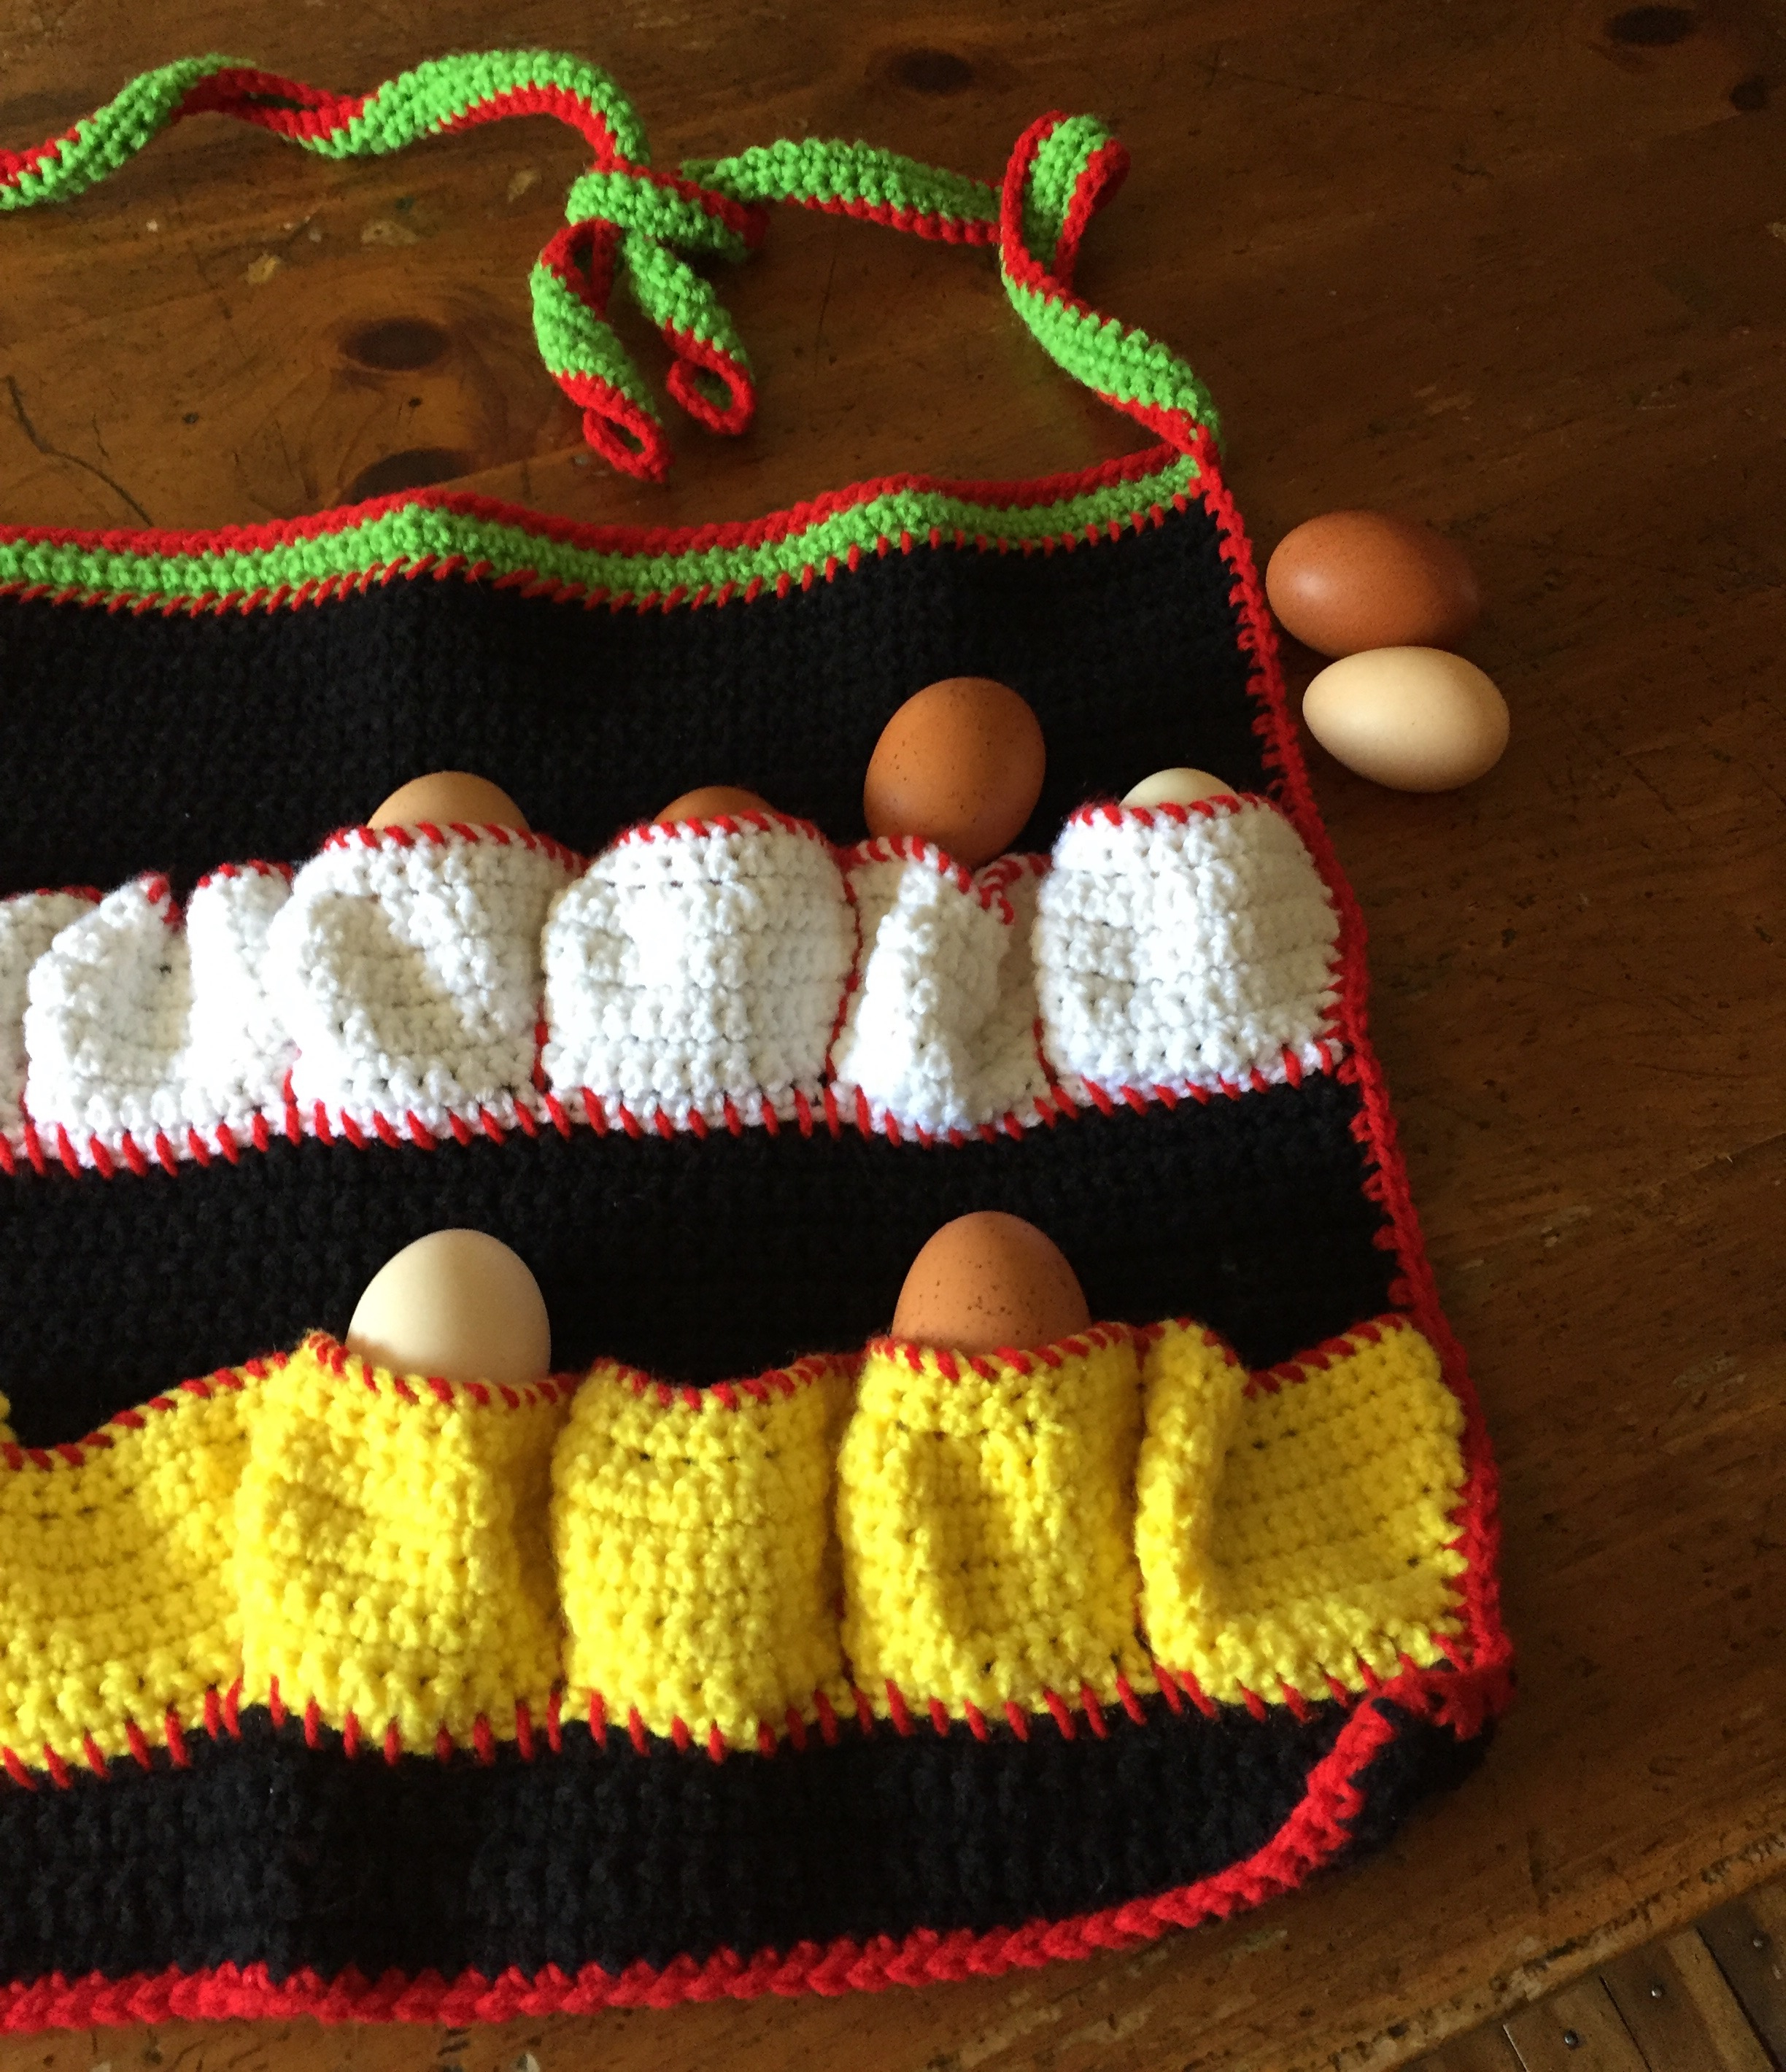 Knitted Hen Pattern Cheerful Crocheted Egg Gathering Apron A Review And A Deal